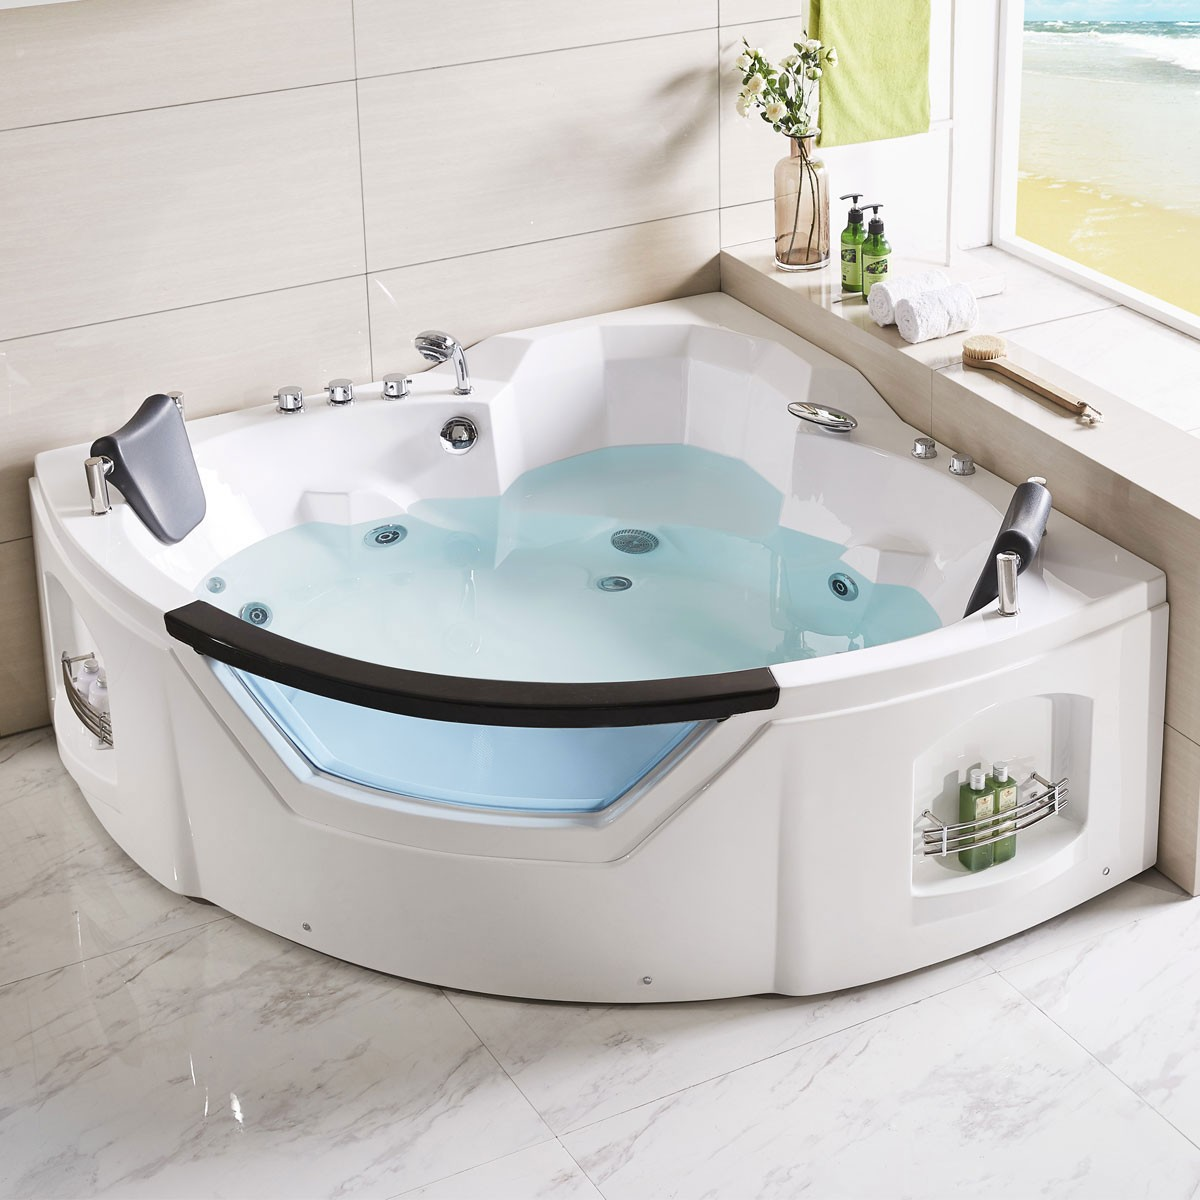 61 x 61 In Fan Shaped Back to Wall Whirlpool Tub with Double Pillow ...